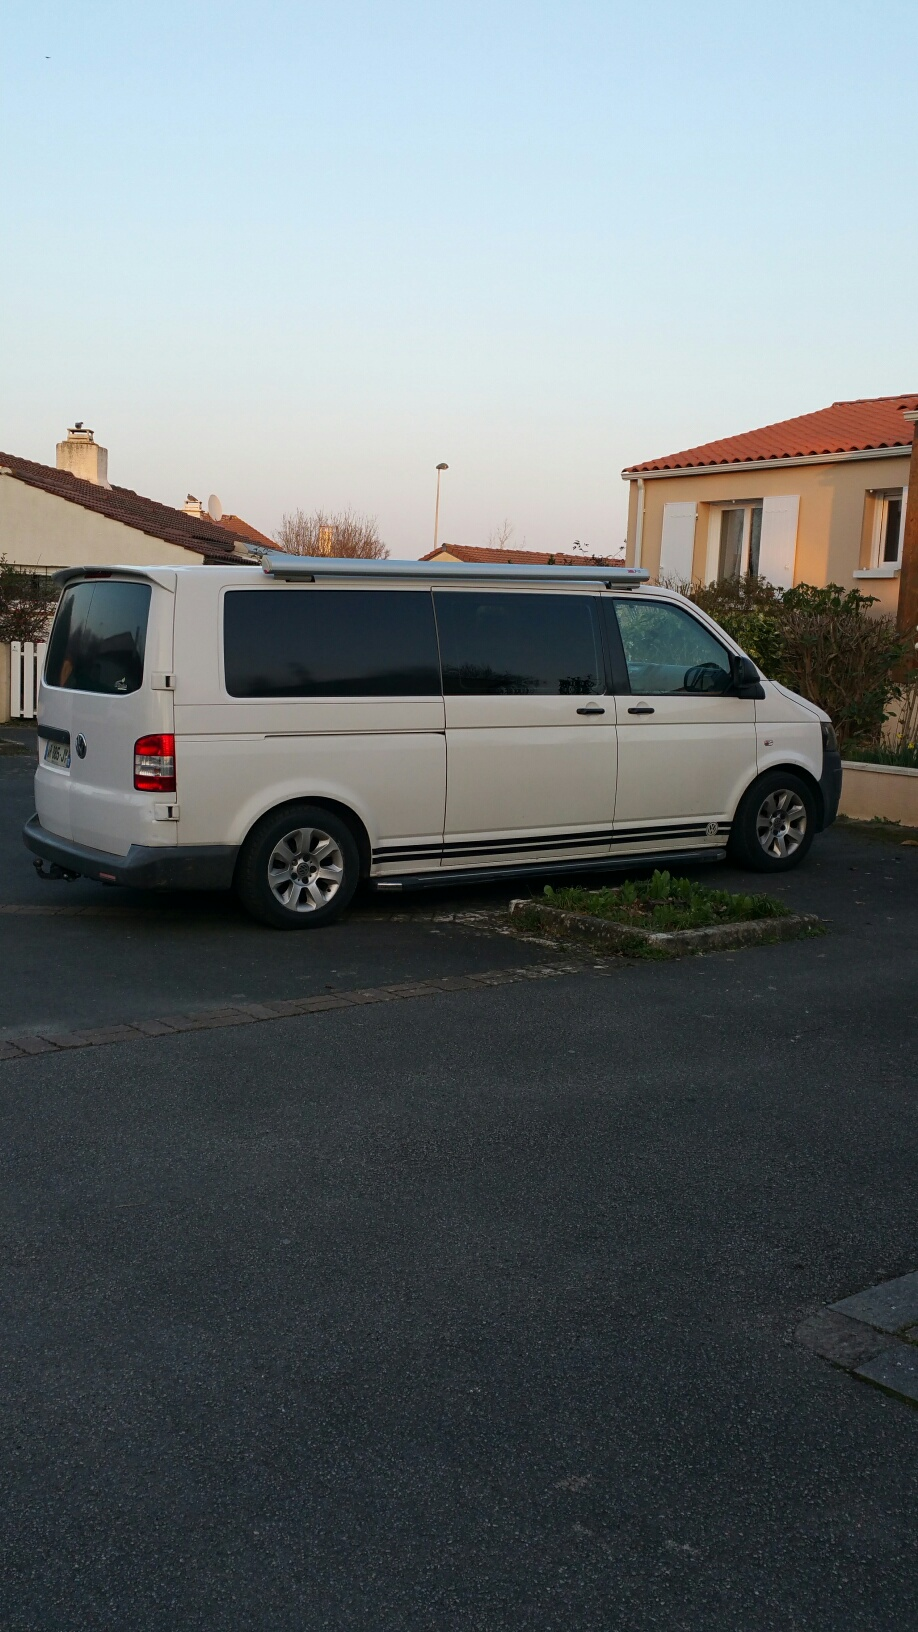 [VENDU] TRANSPORTER VW T5 AMENAGE KAPAM (H1 L2) 6 pl CG 20180214